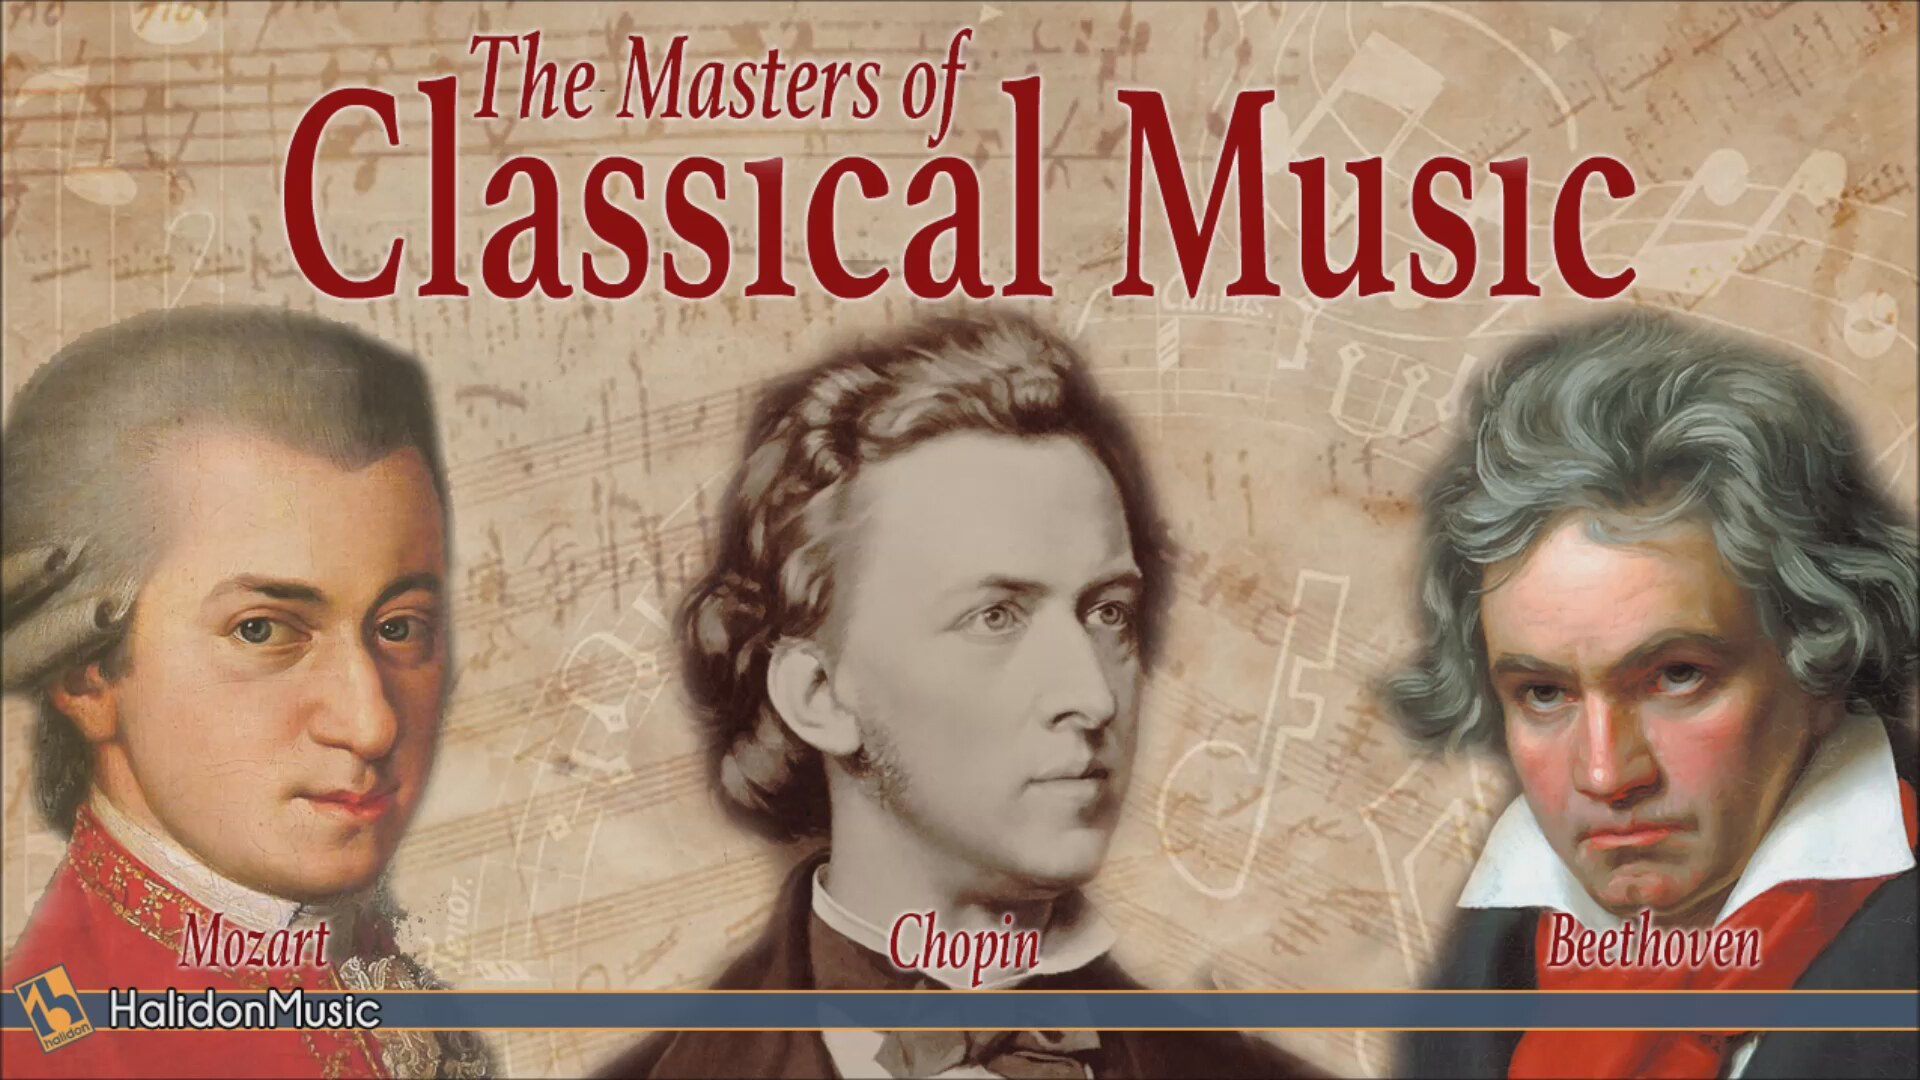 an introduction to the music of haydn mozart beethoven and bach Free classical music papers music, symphony, haydn, mozart, and beethoven] 2402 words beethoven and bach - classical music can be best summed by mr dan.